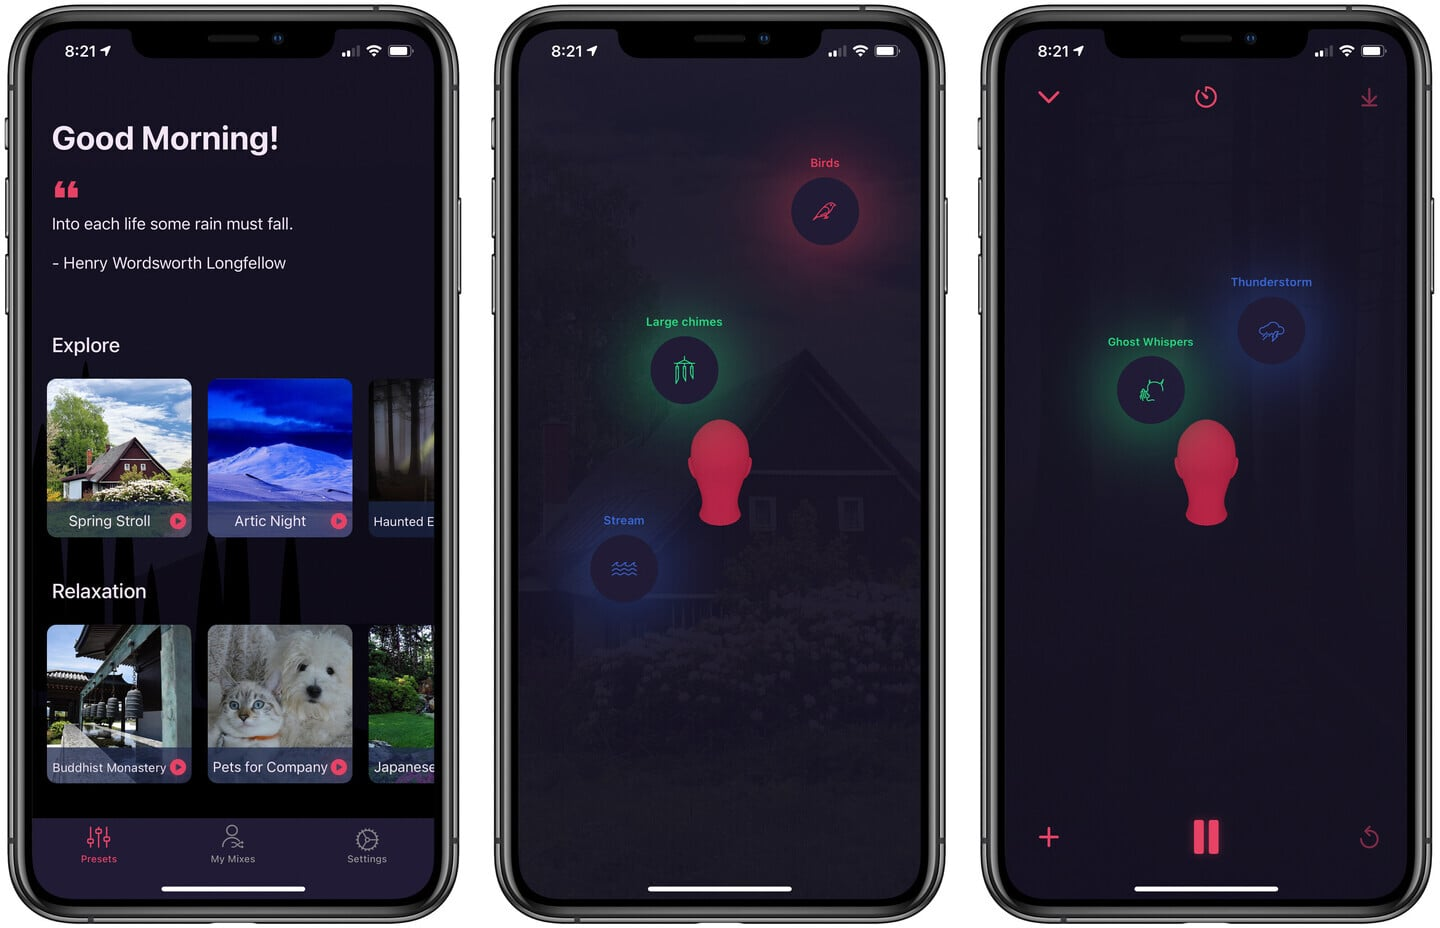 Experience the Newest AirPods Pro Feature With SpatialBliss